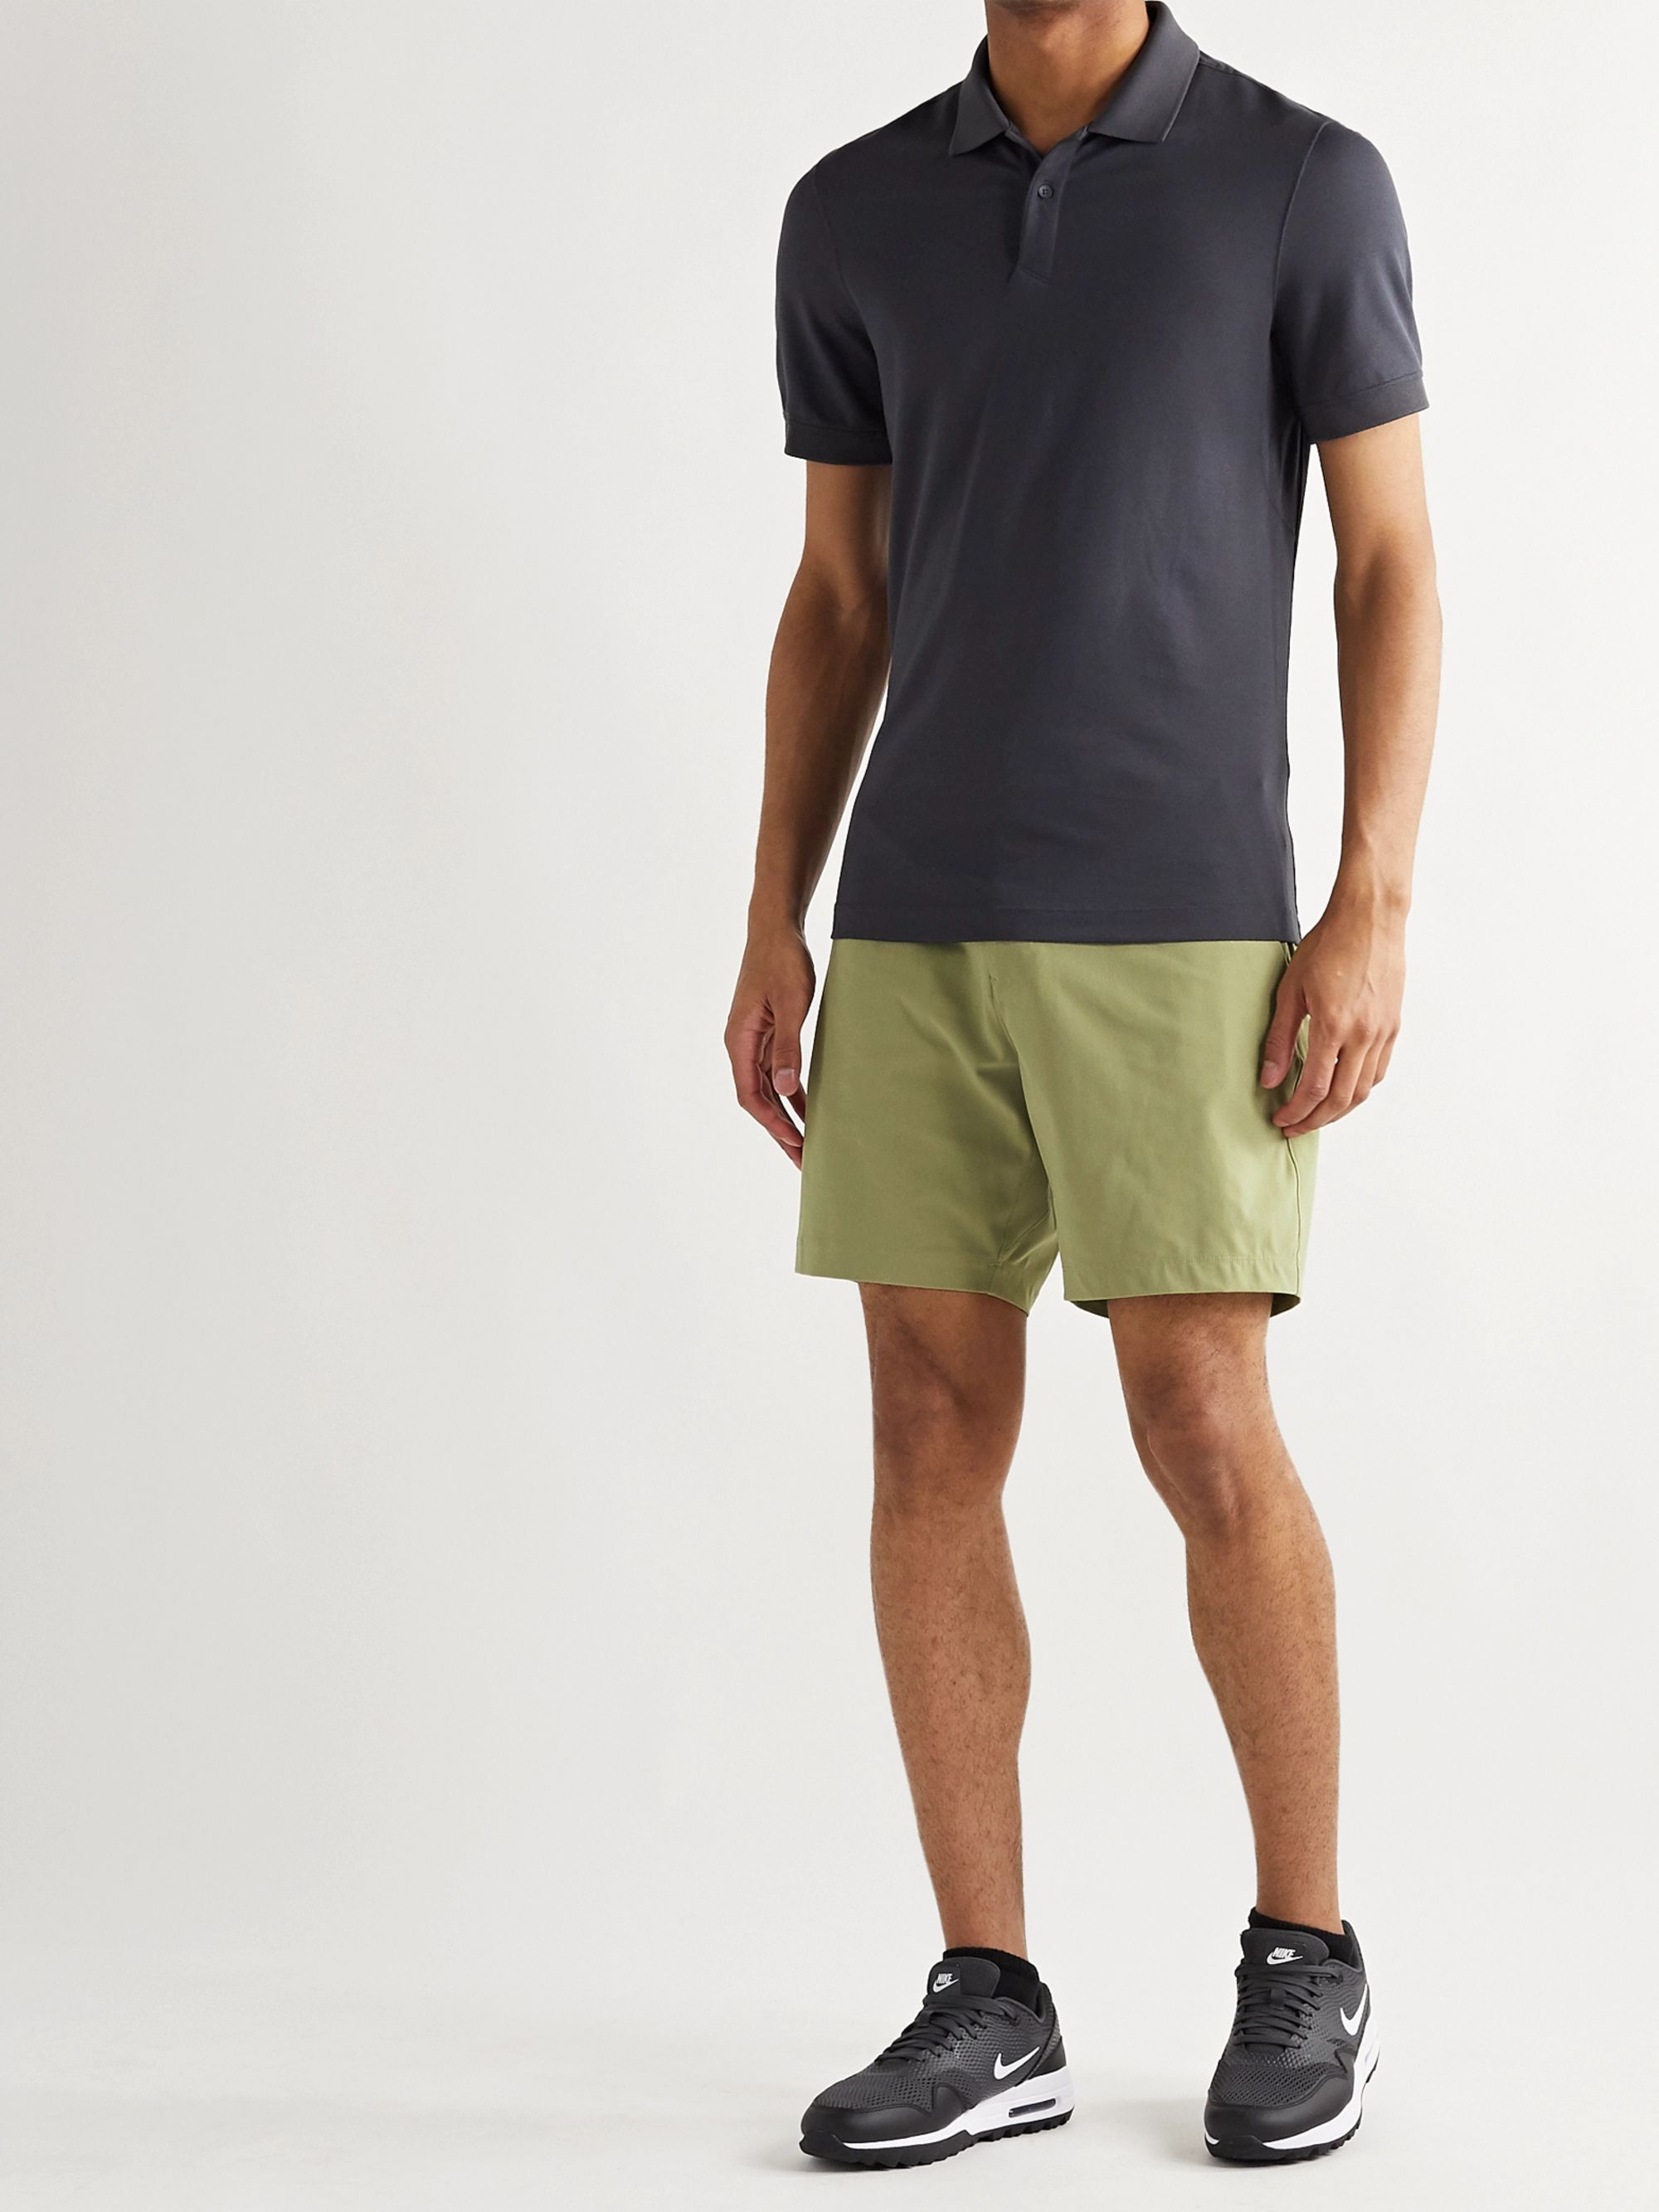 Lululemon Commission Warpstreme Shorts